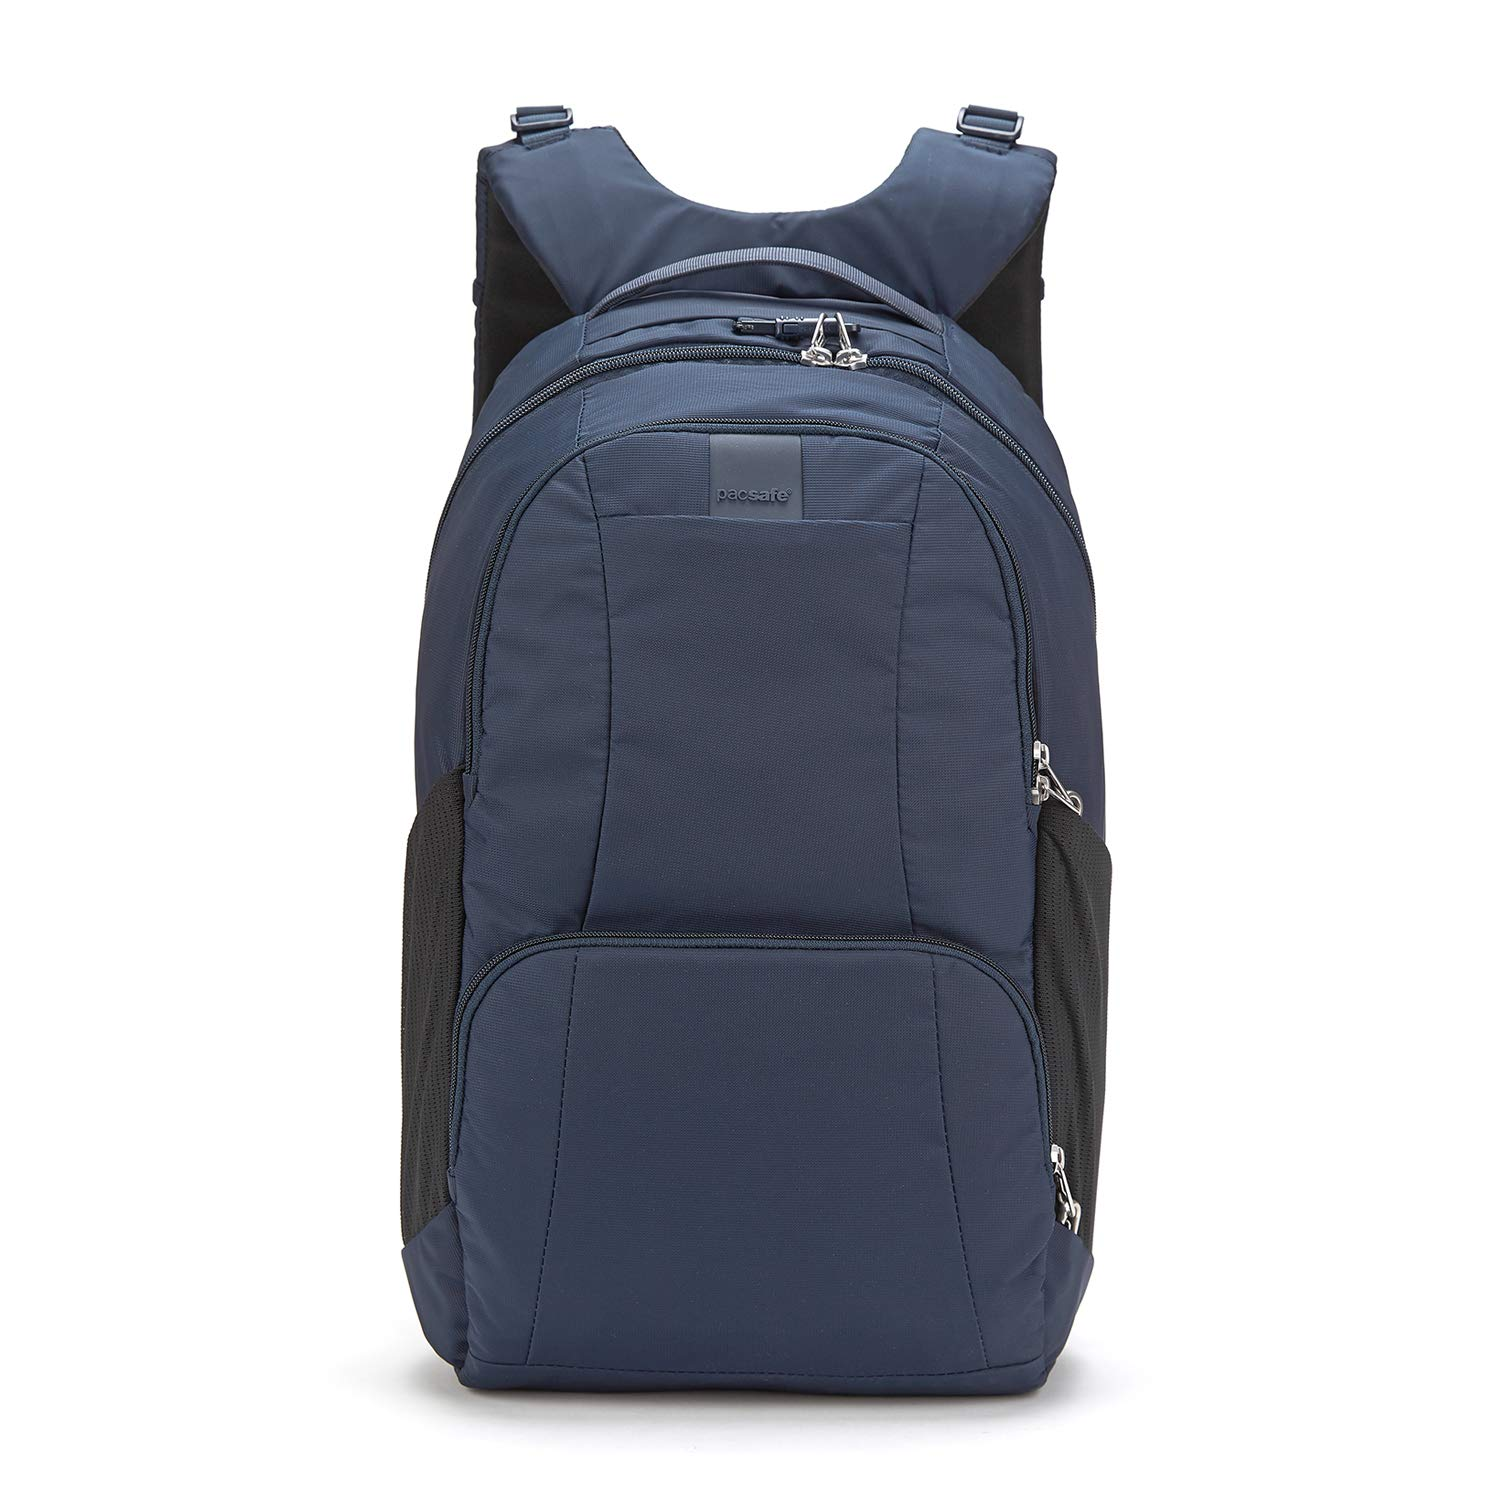 Pacsafe Metrosafe LS450 25 Liter Anti Theft Laptop Backpack - with Padded 15'' Laptop Sleeve, Adjustable Shoulder Straps, Patented Security Technology (Deep Navy) by Pacsafe (Image #1)